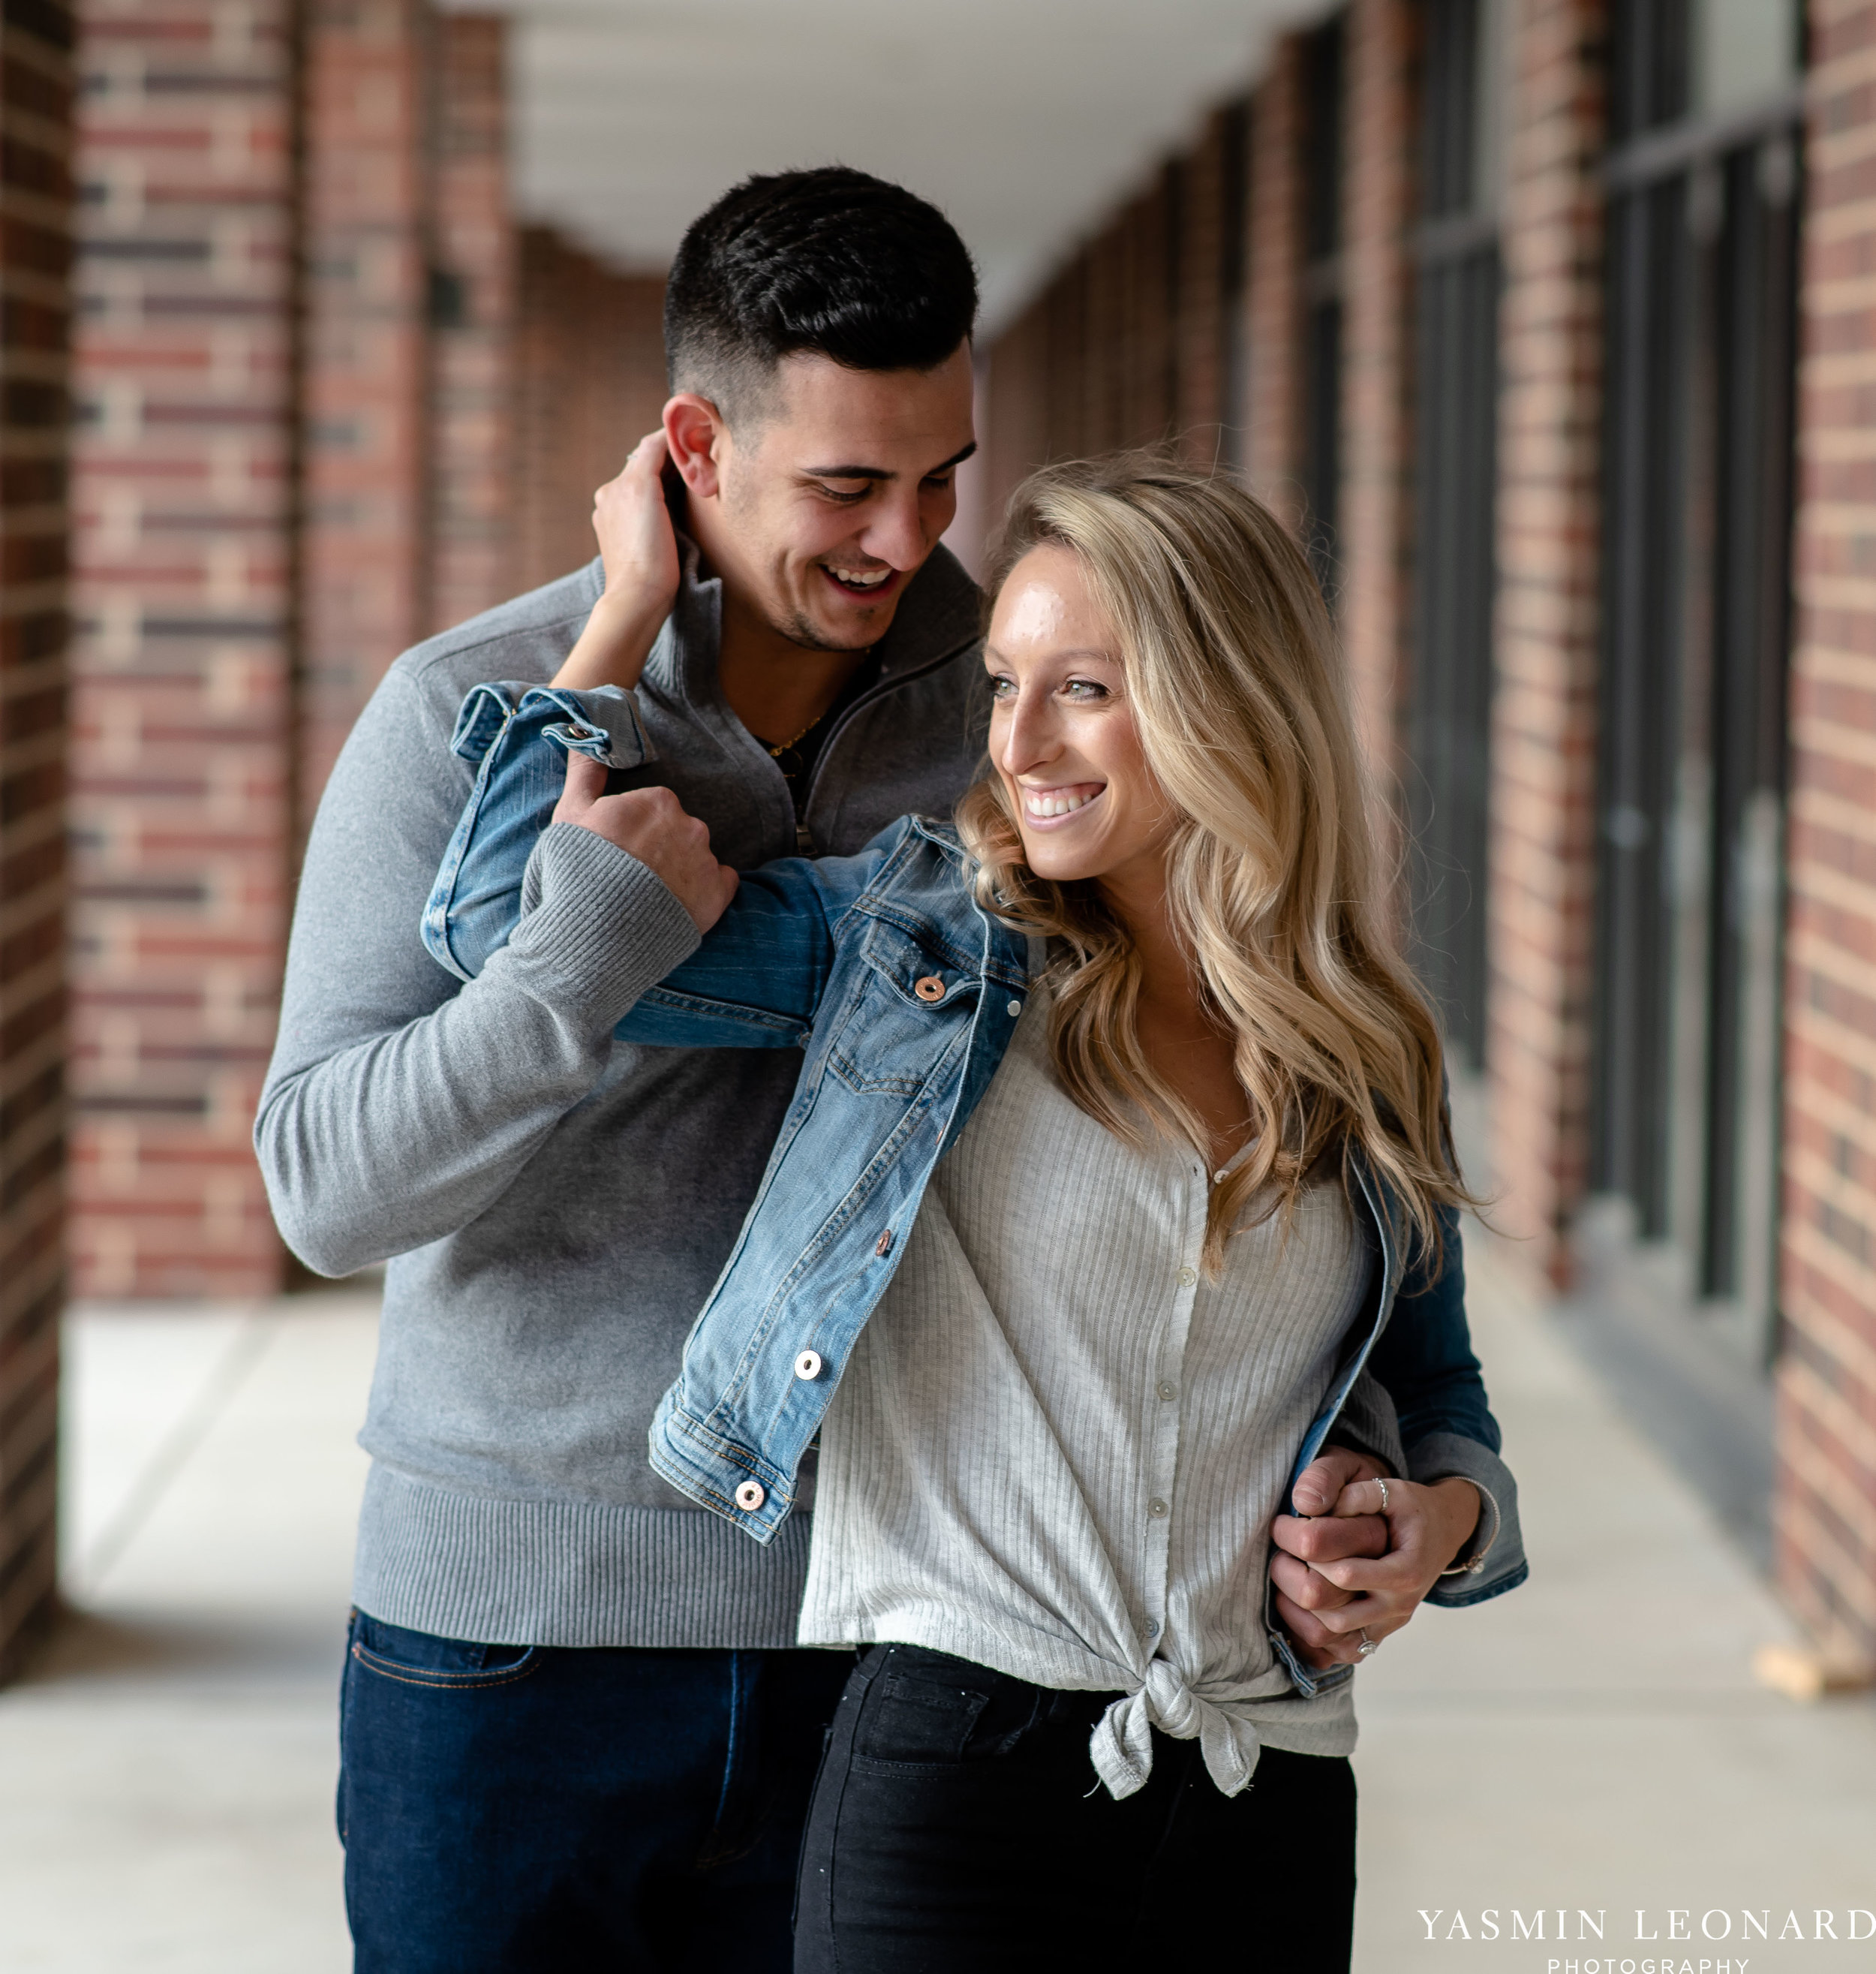 High Point Wedding Photographer - High Point Engagement PIctures - Engagement Session Ideas - Yasmin Leonard Photography - High Point Photographer - NC Wedding Photographer -22.jpg